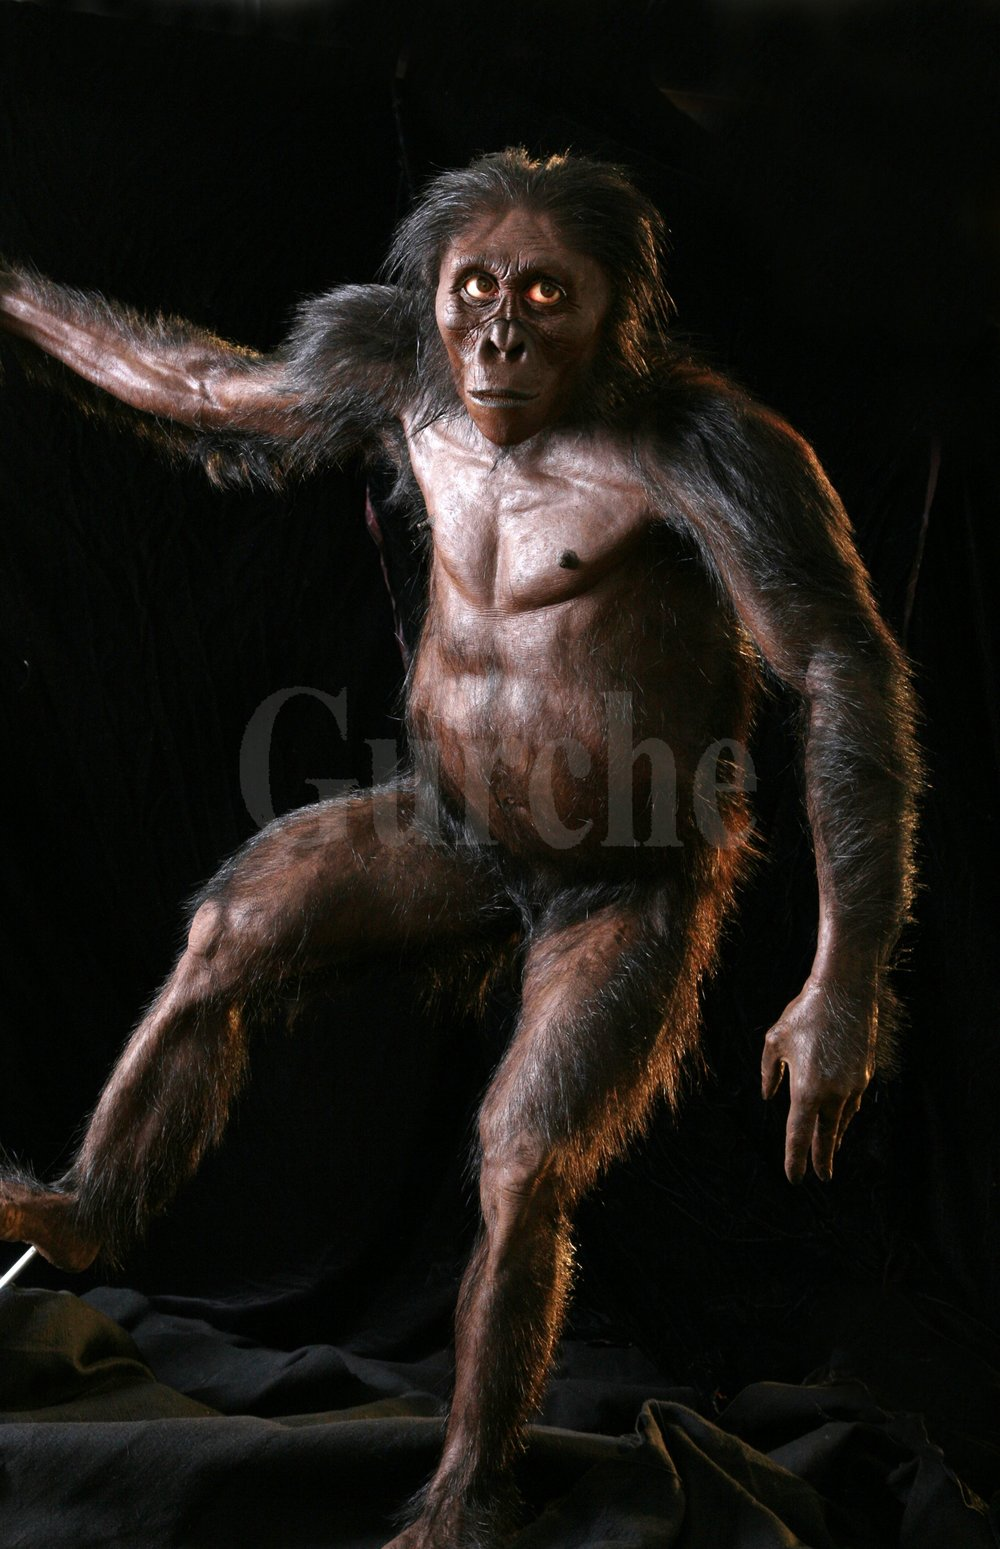 Img 982  Reconstruction of Lucy Australopithecus afarensis.jpg